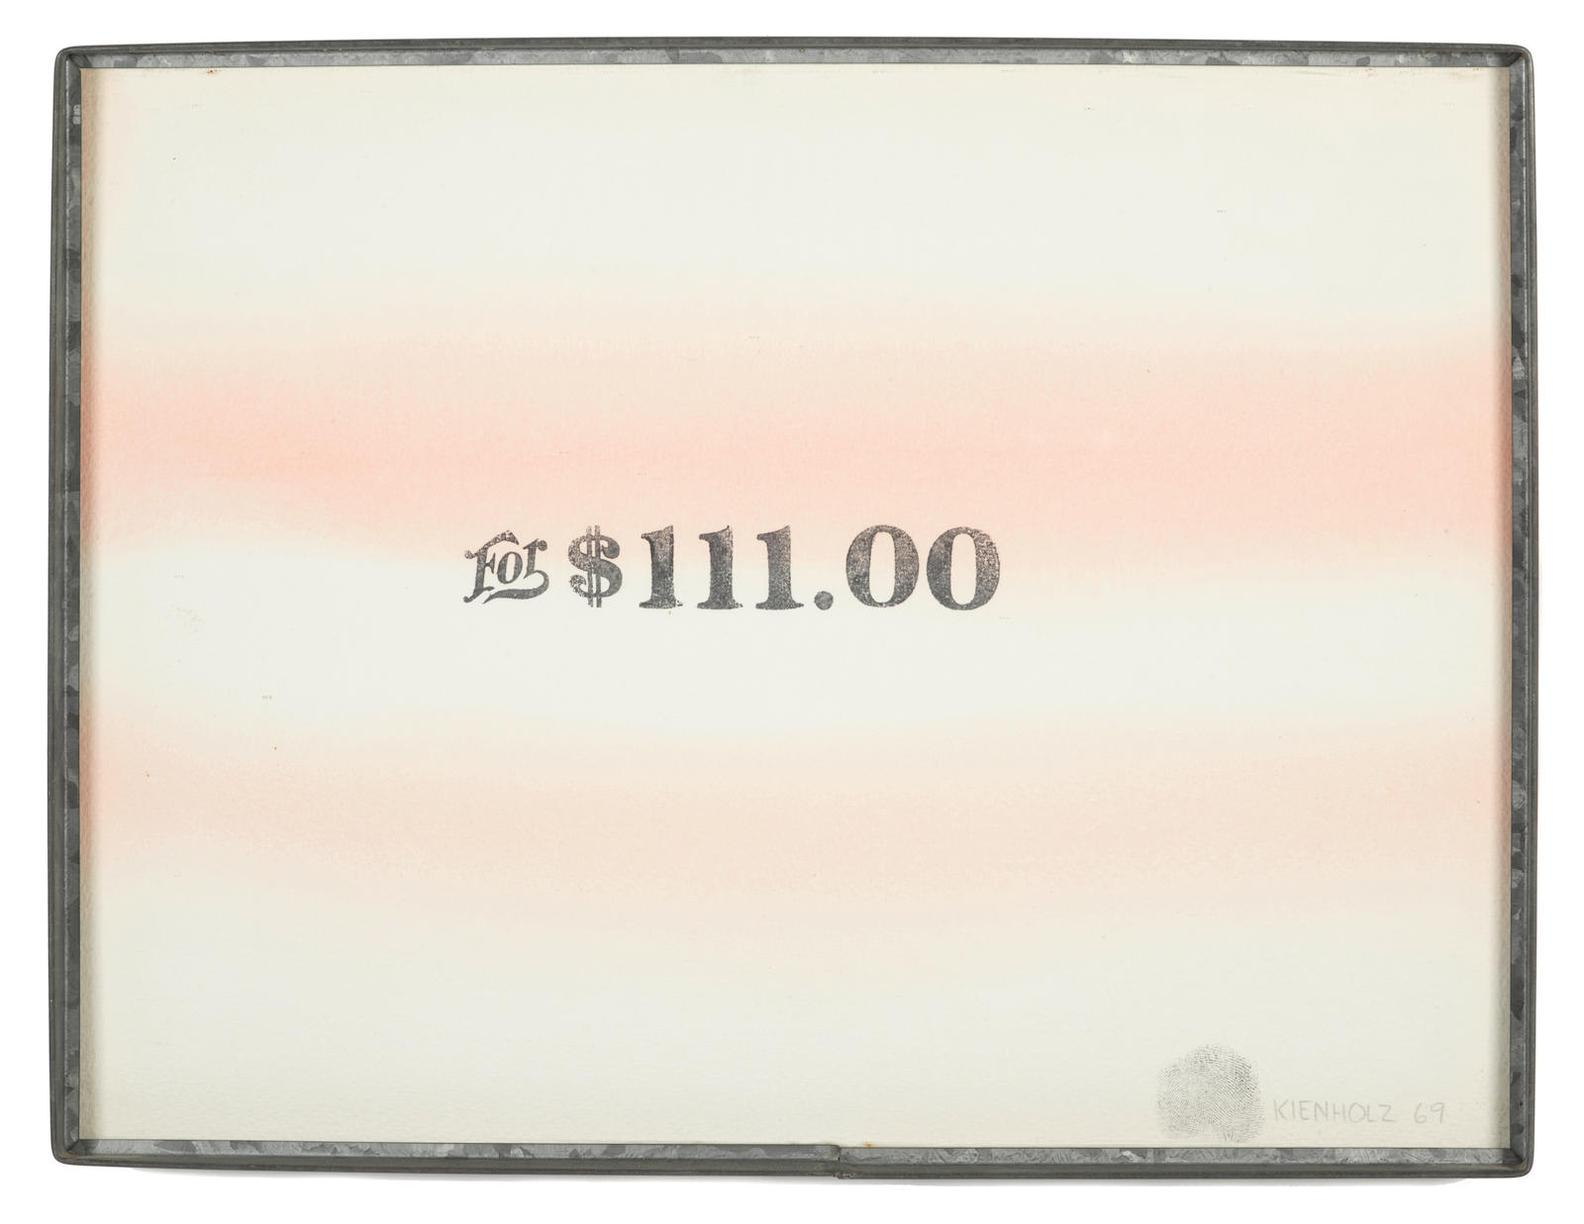 Edward Kienholz-For $111.00-1969